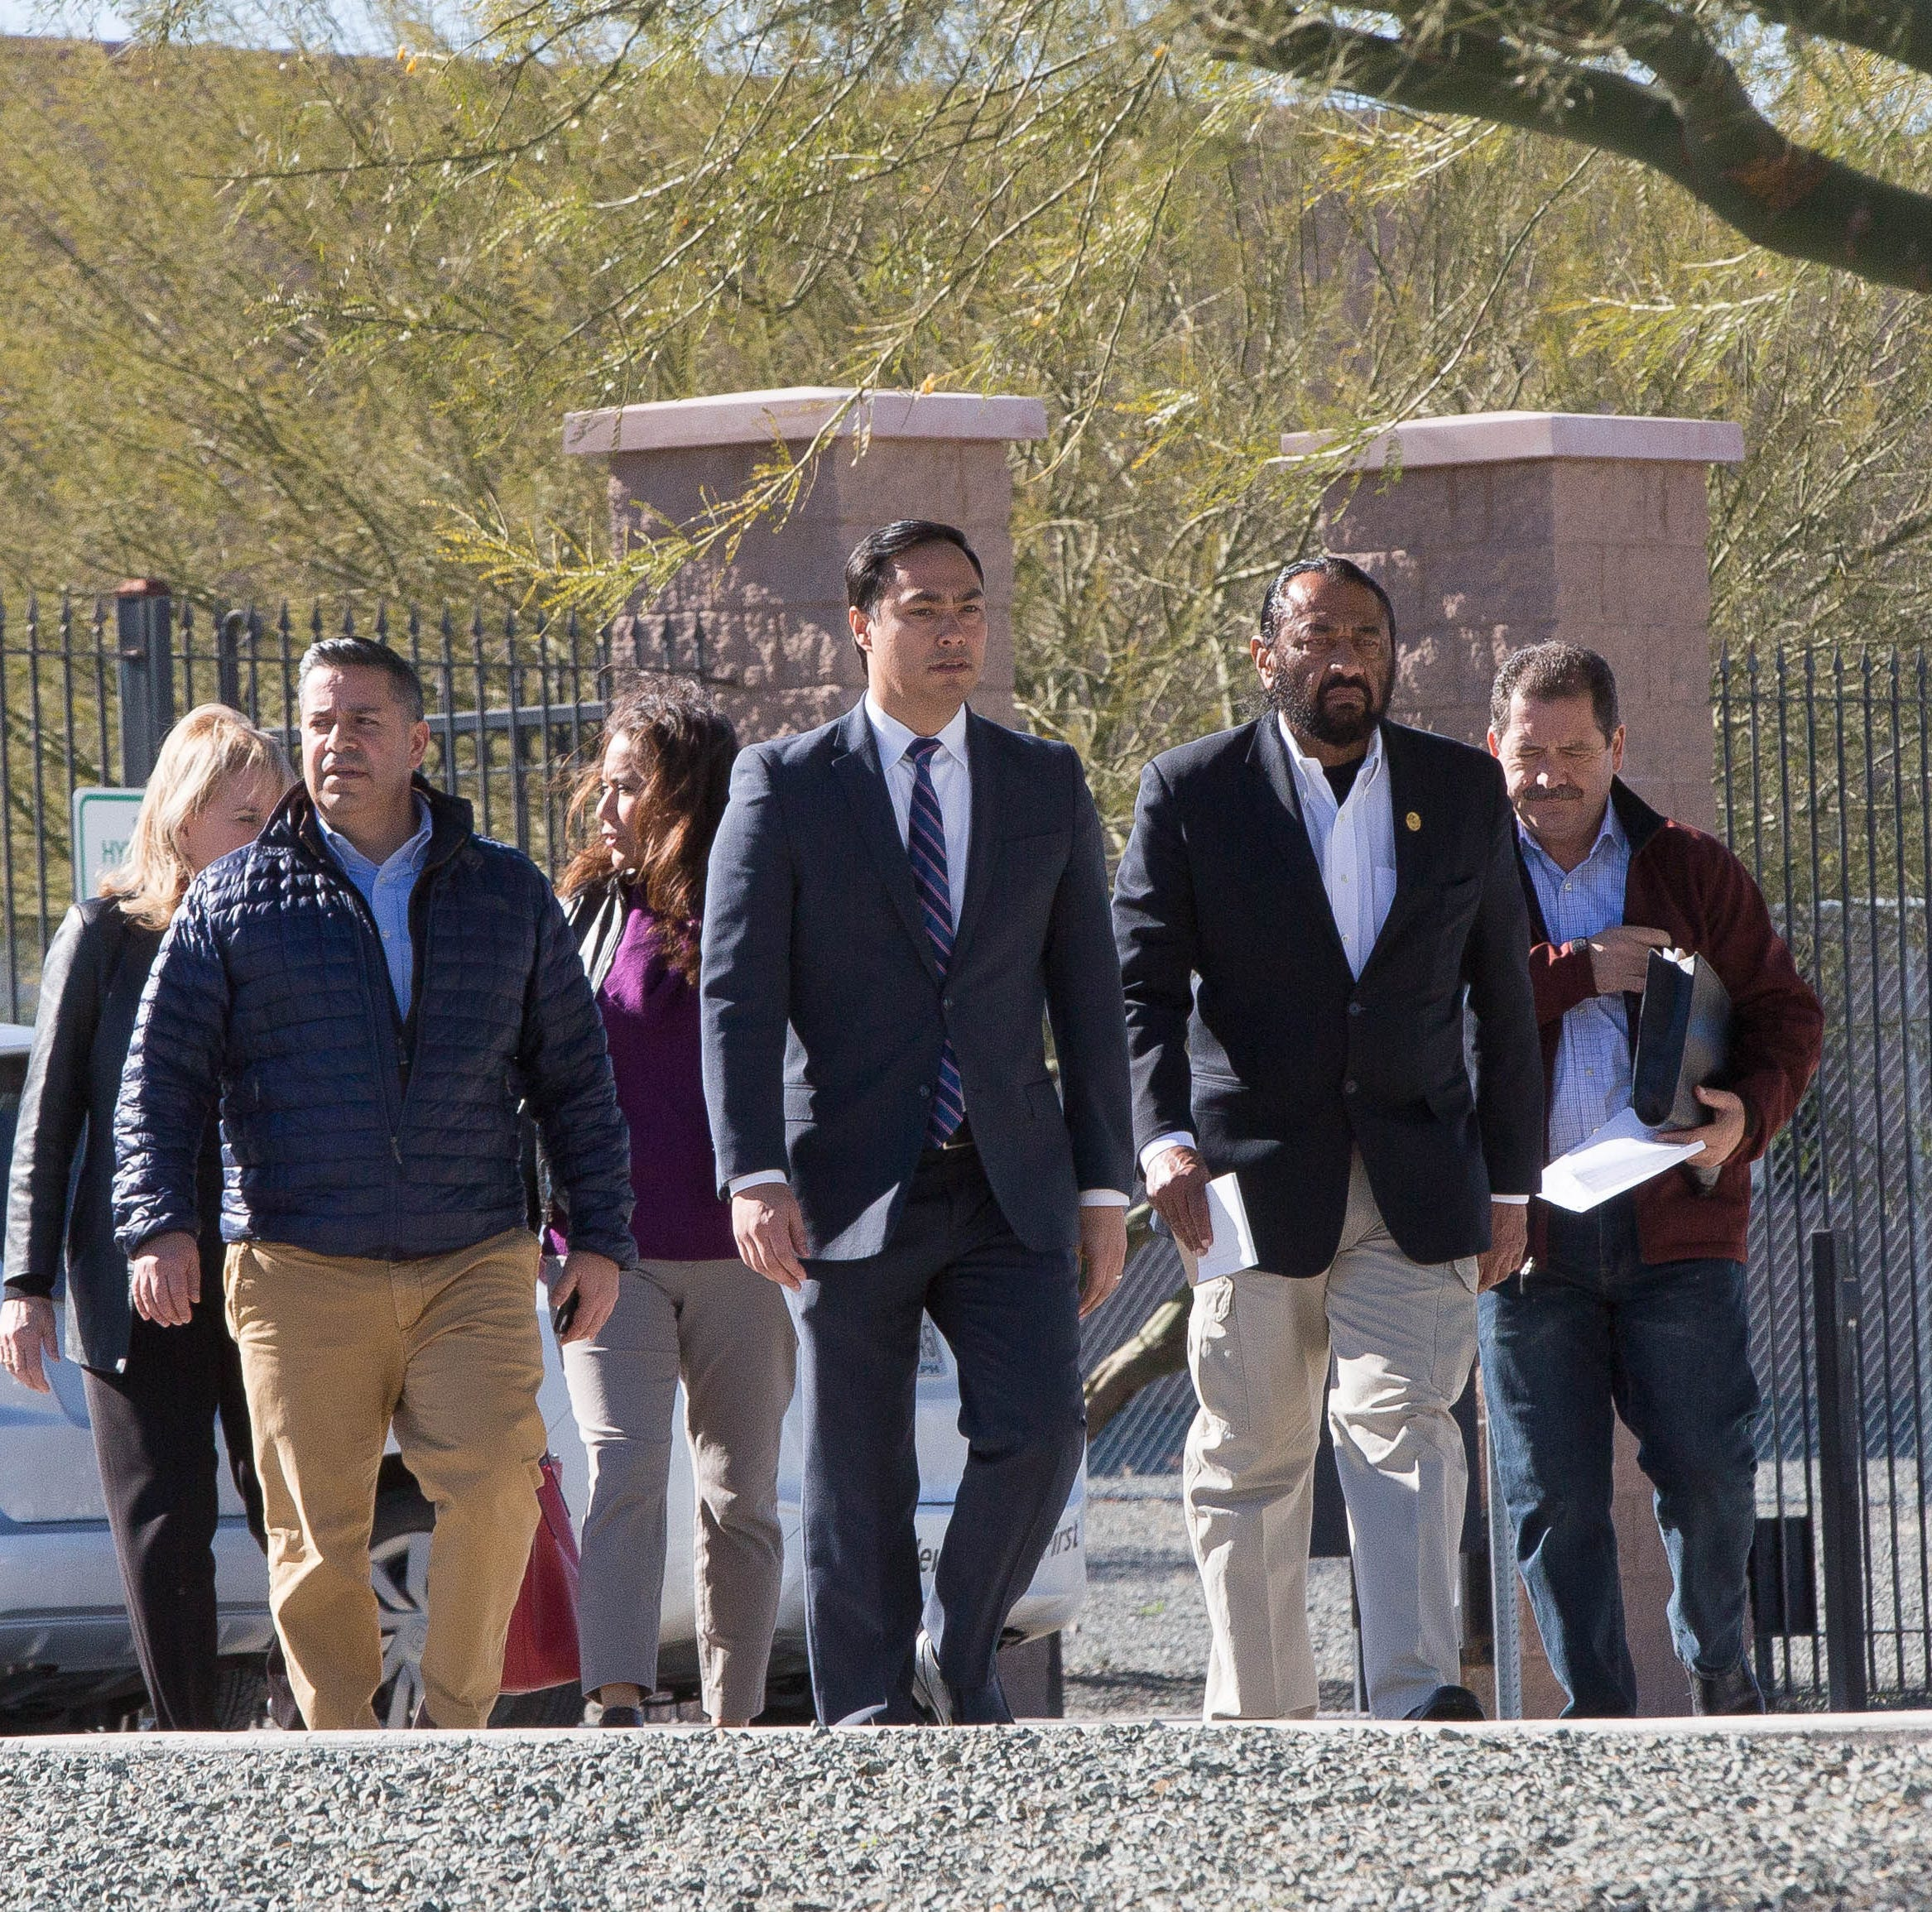 Congressman Joaquin Castro, D-Texas, chairman-elect of the Congressional Hispanic Caucus, walks out of the Border Patrol station following a tour of the facility on Tuesday, Dec. 18, 2018.